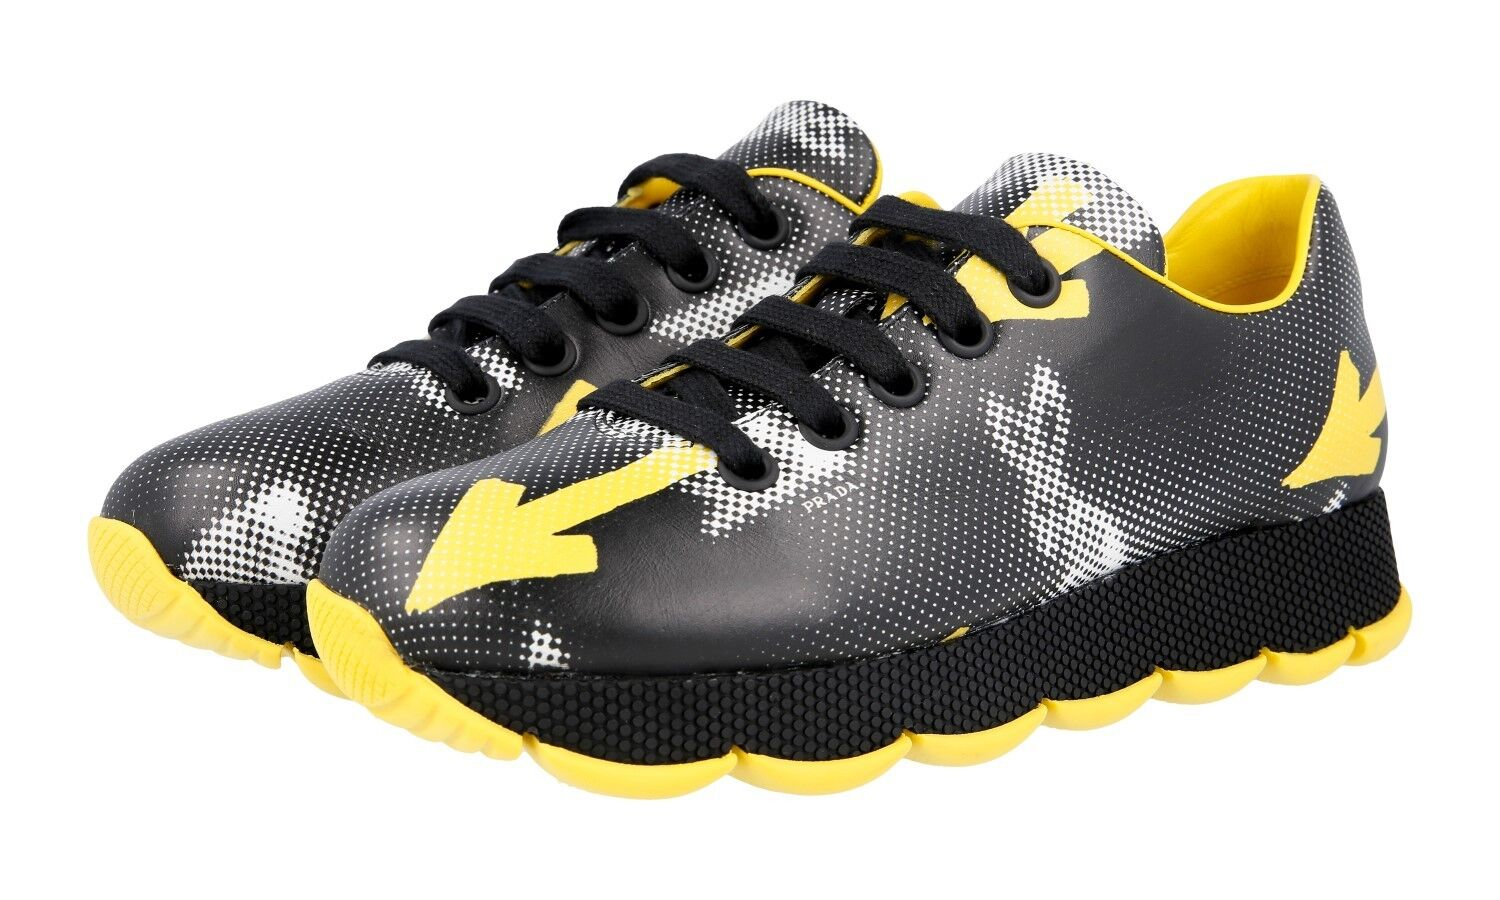 shoes PRADA LUSSO 1E654G black yellow NUOVE 37,5 38